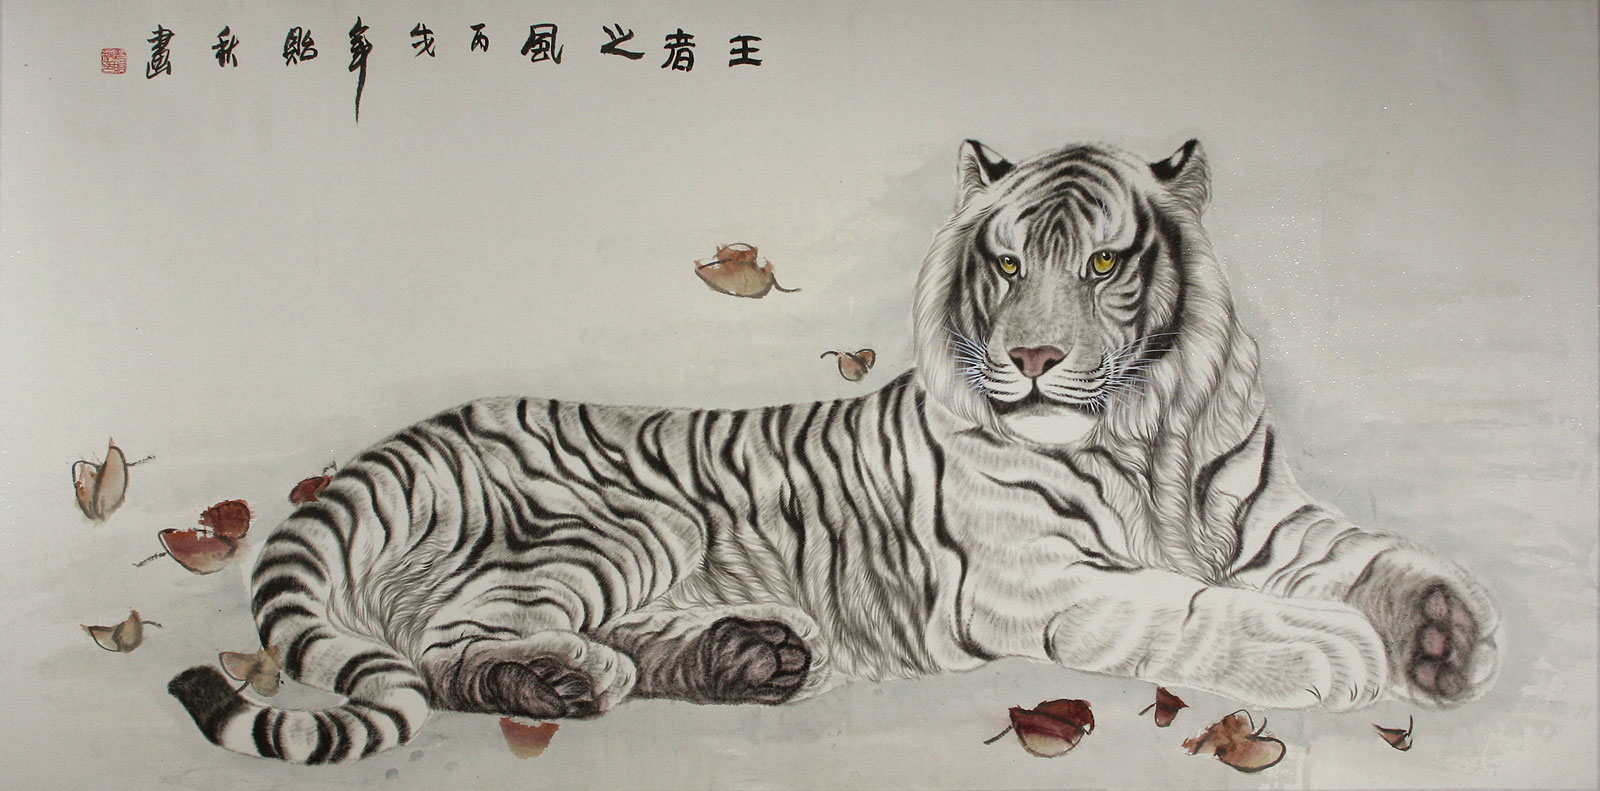 White Tiger Painting - Tigers & Dragons Paintings and Wall